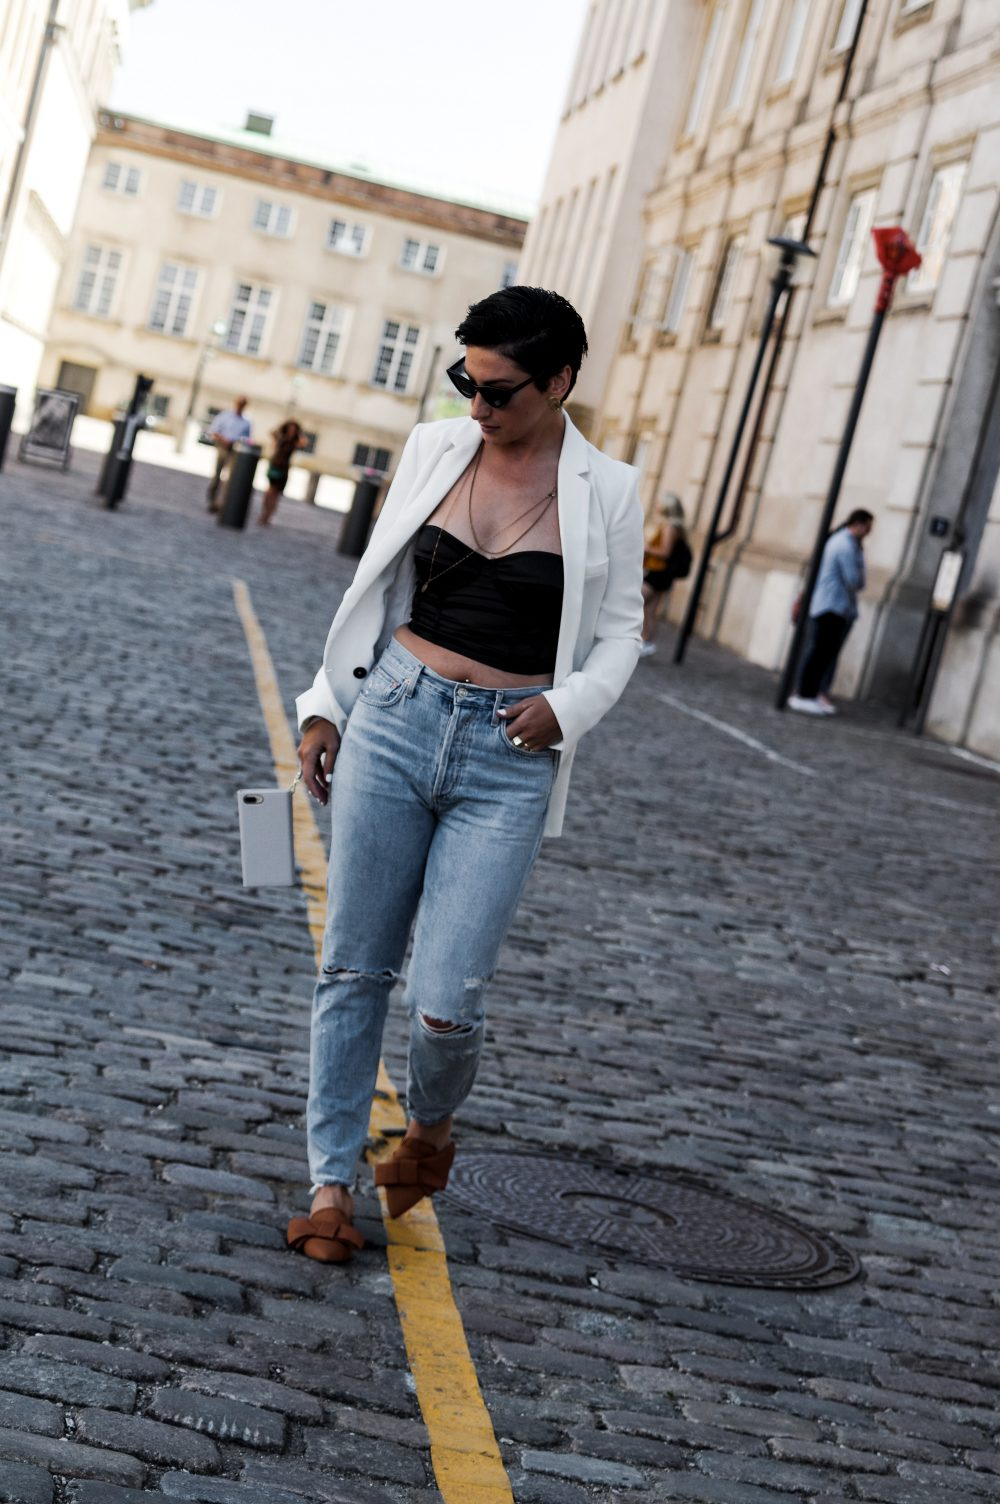 scandinavian-style-fall-outfit-summerfall-outfit-jeans-denim-outfit-of-the-day-streetstyle-outfit.